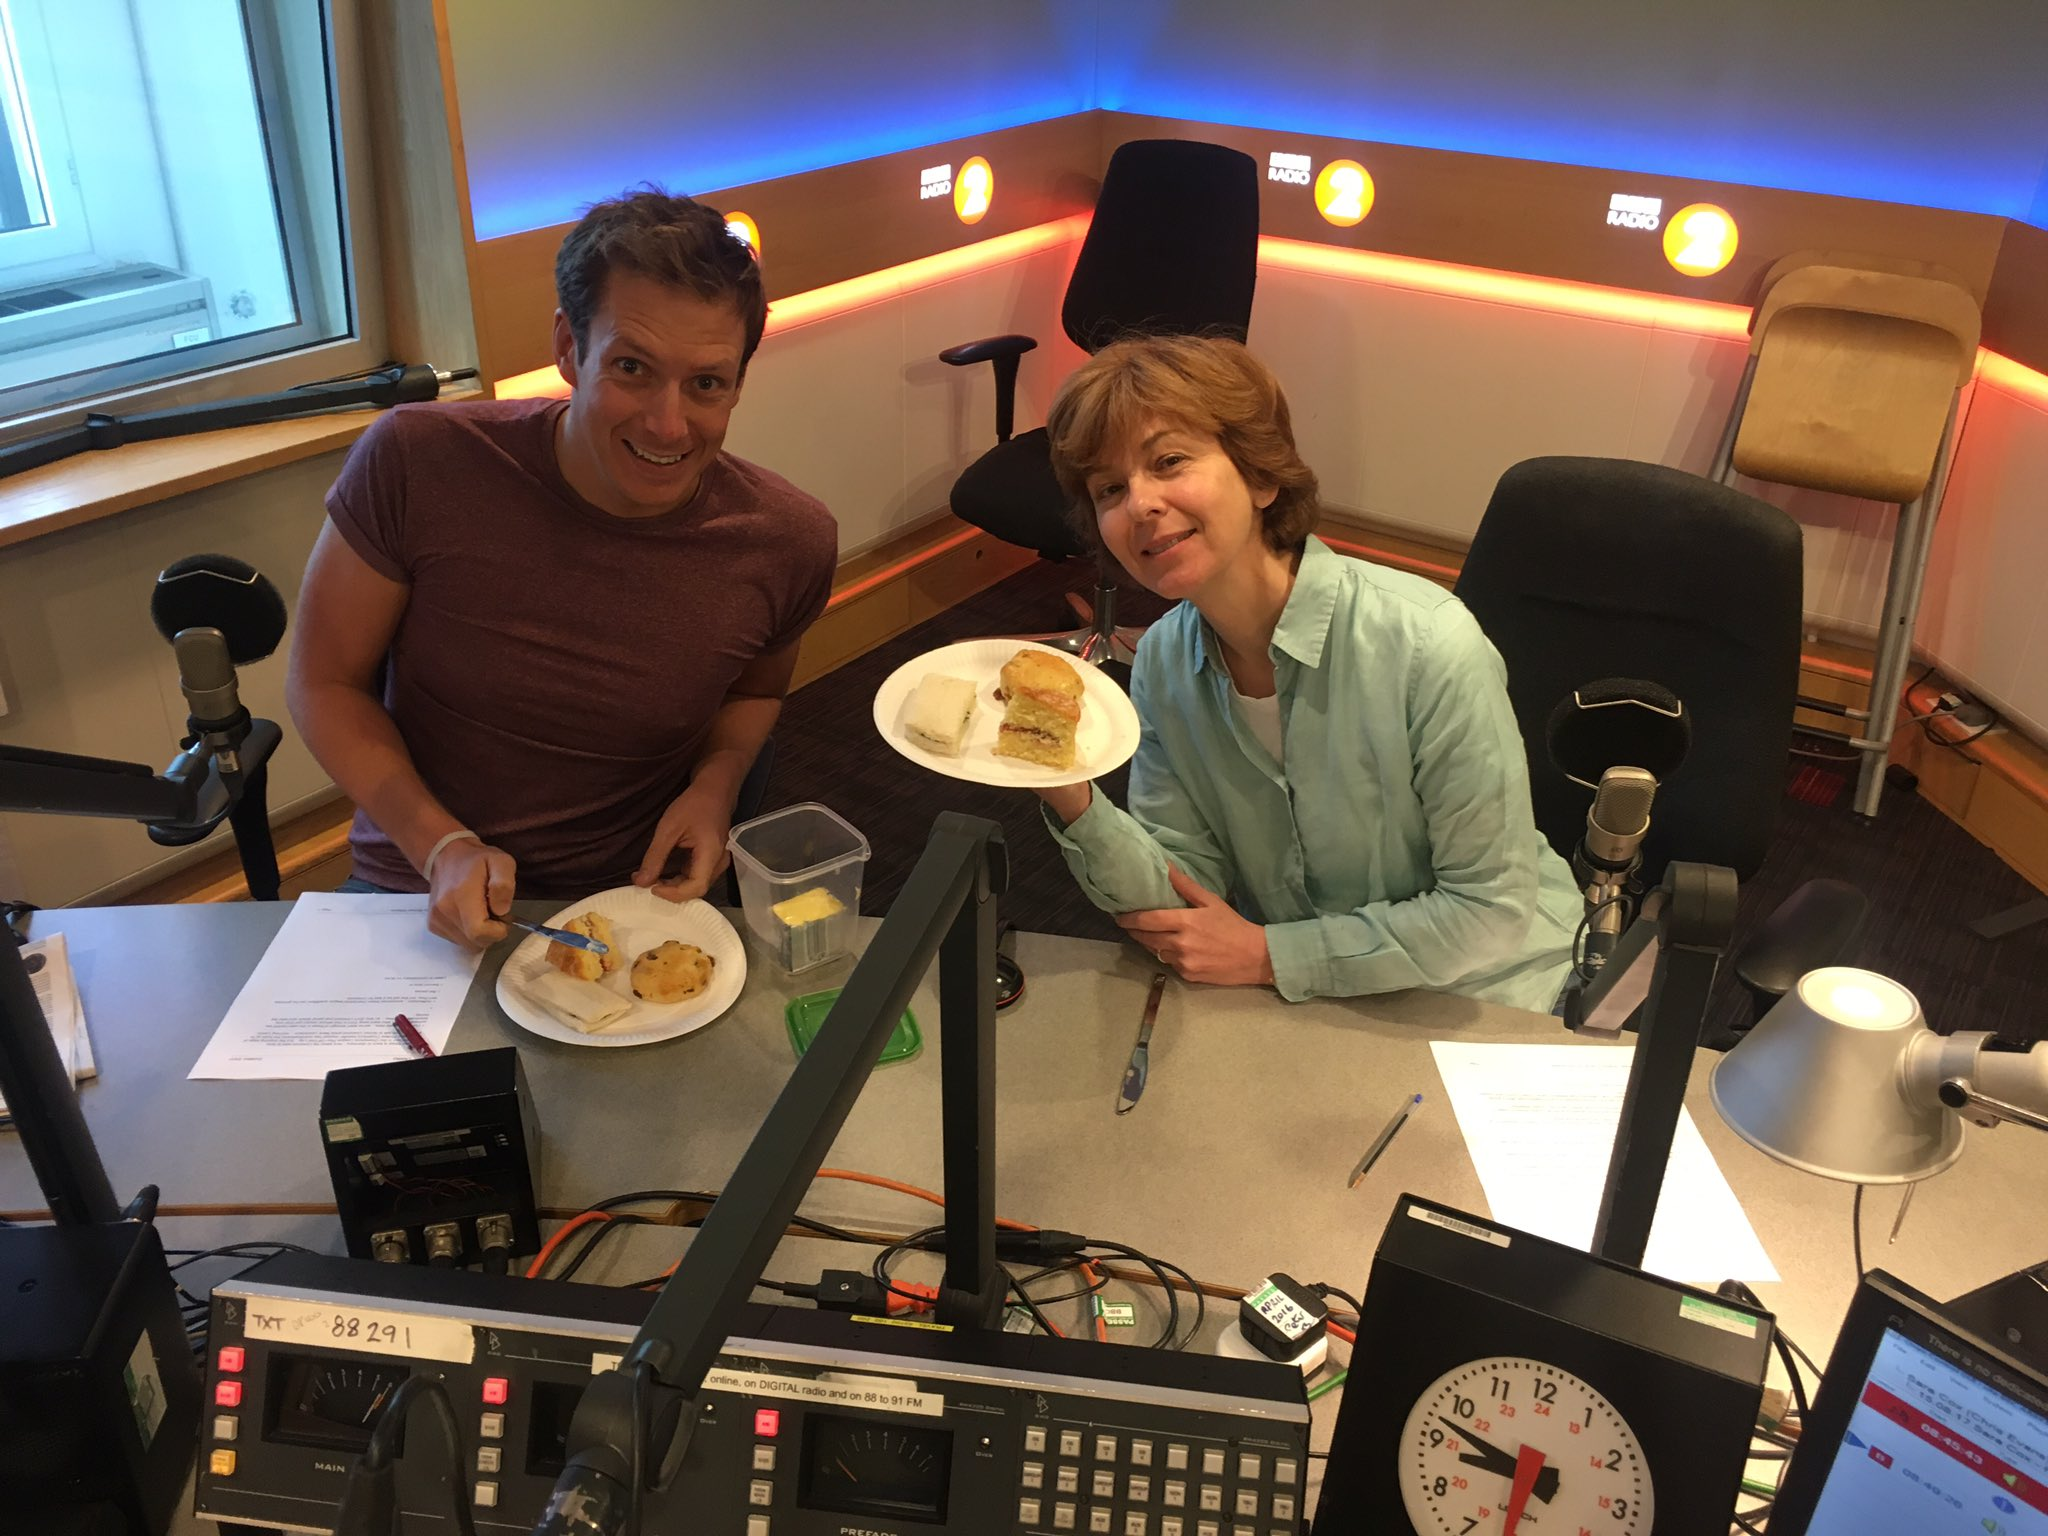 Ever so ever so here @BBCRadio2 Here's @mikewills_sport & @RealLynnBowles enjoying an afternoon at err.. 8.48am https://t.co/RacMSiREzi